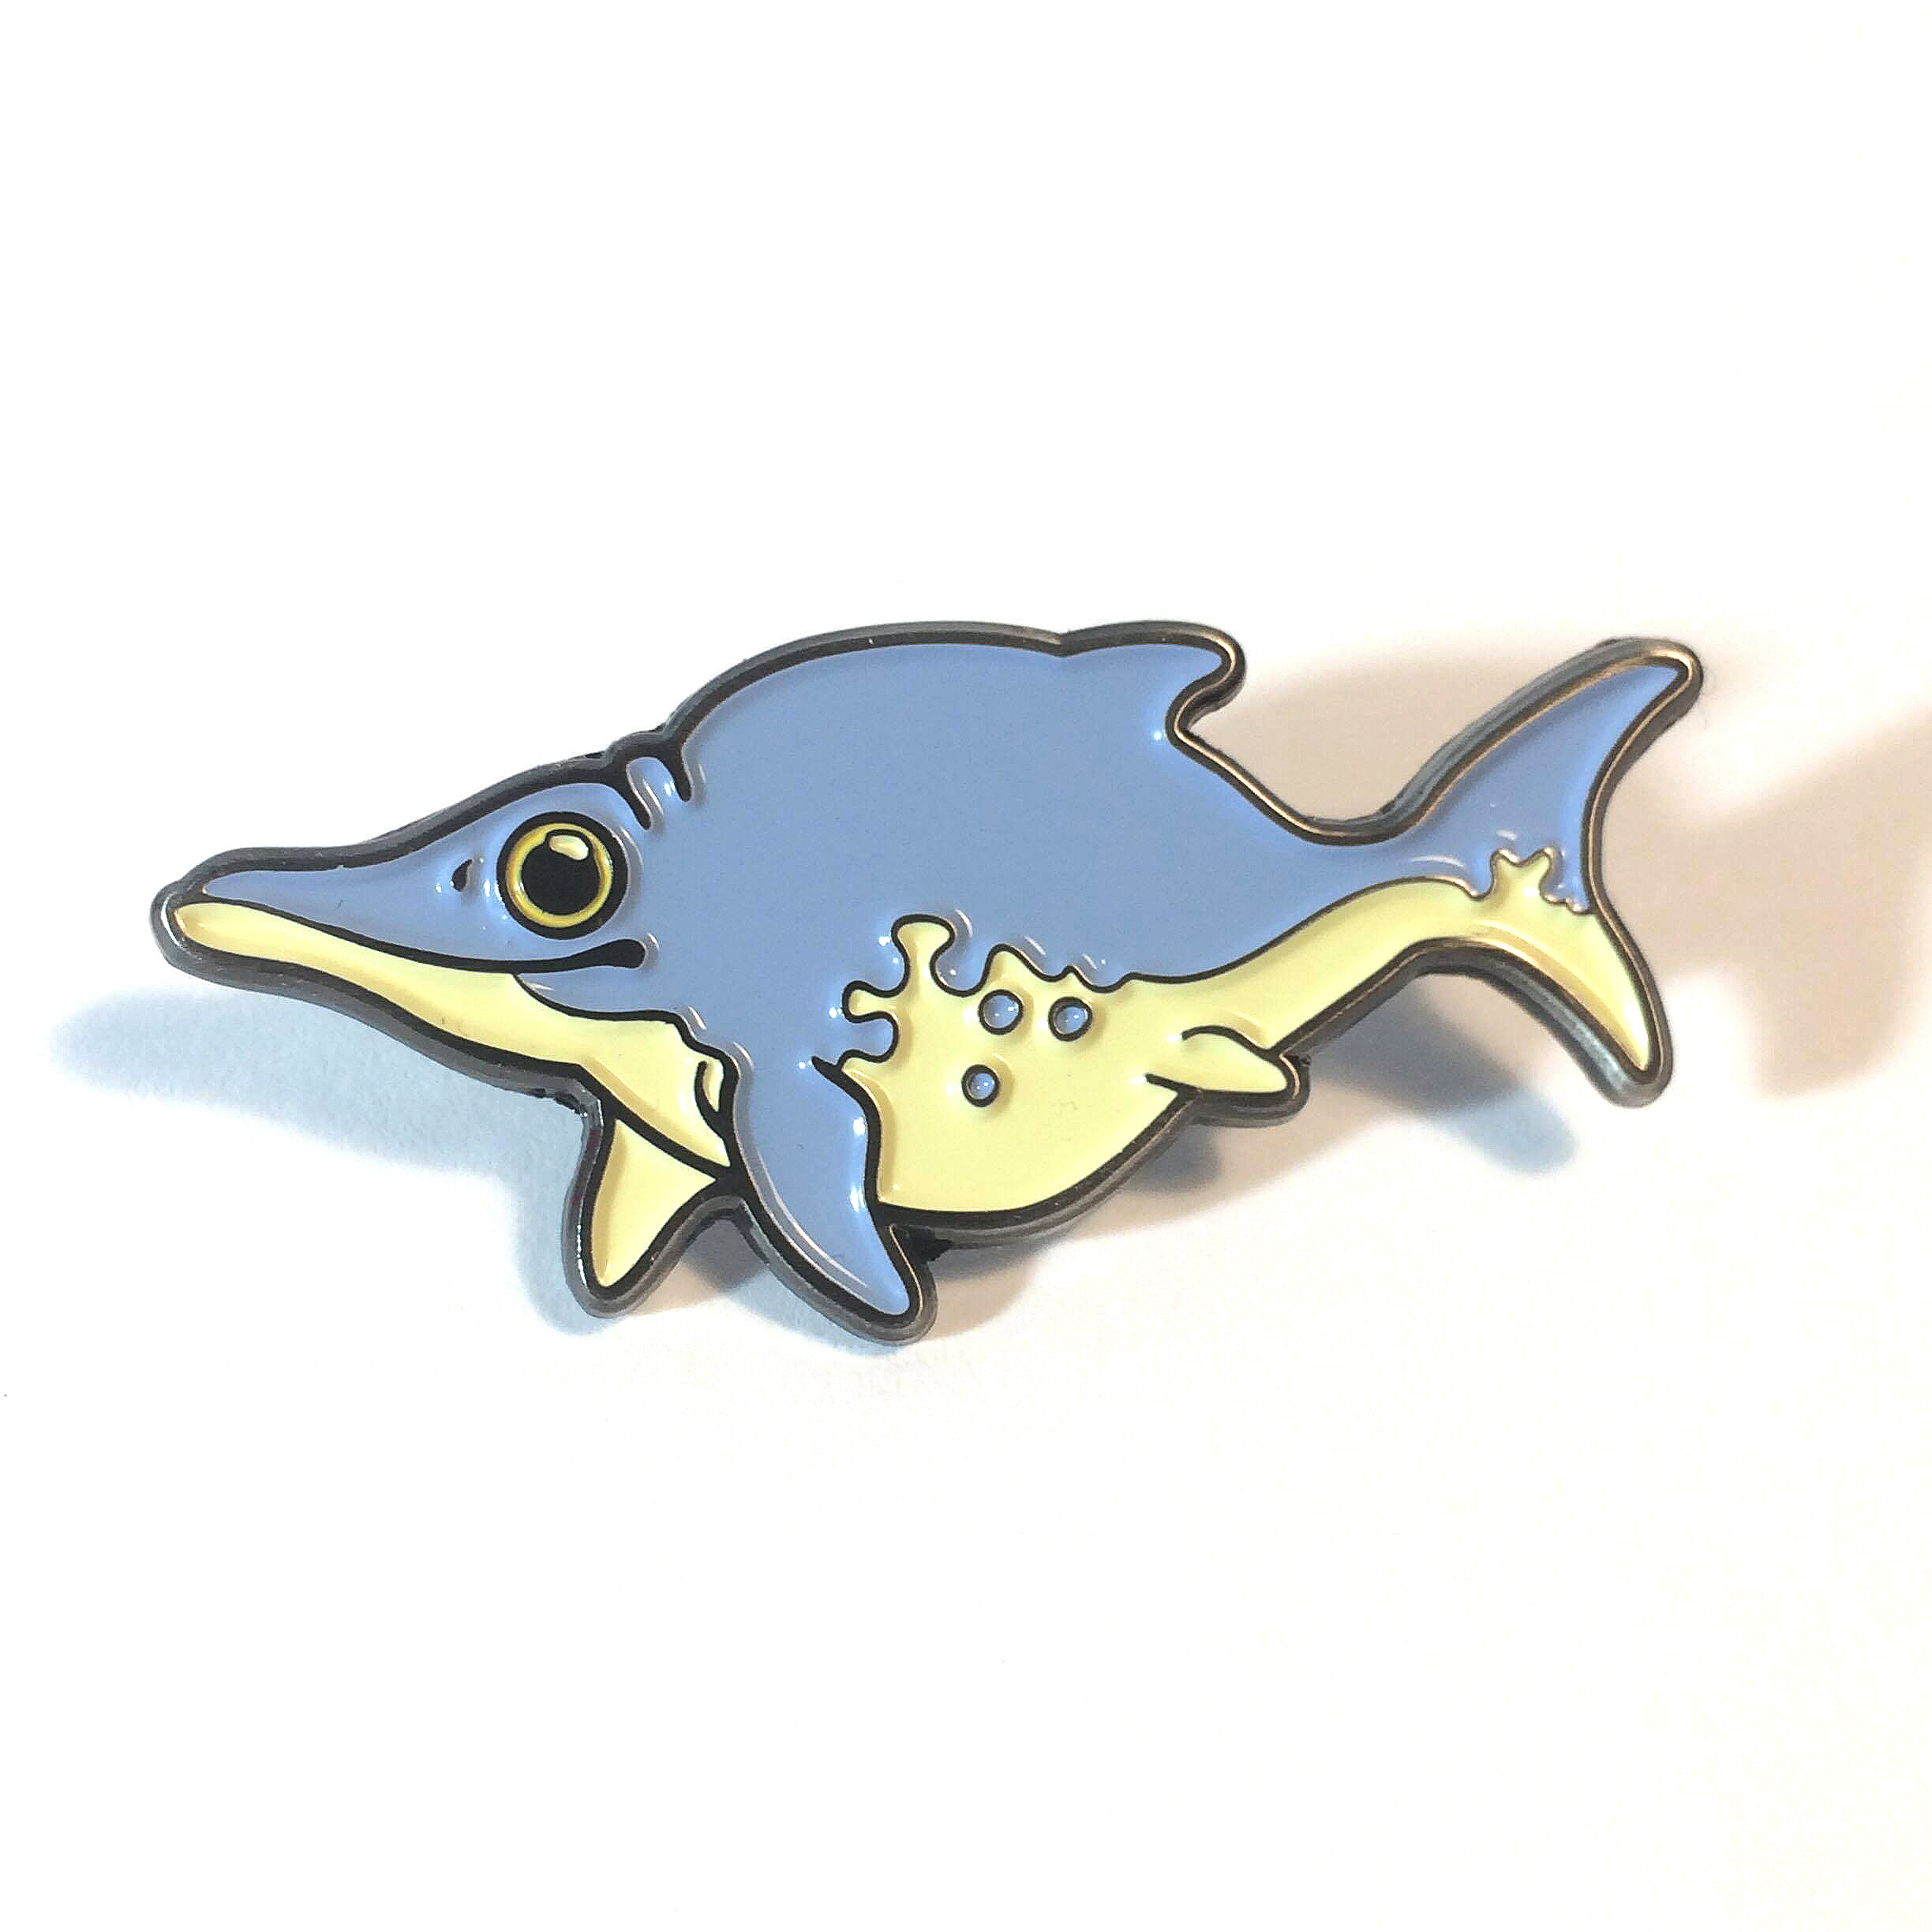 Ichthyosaurus pin by Mary Sanche